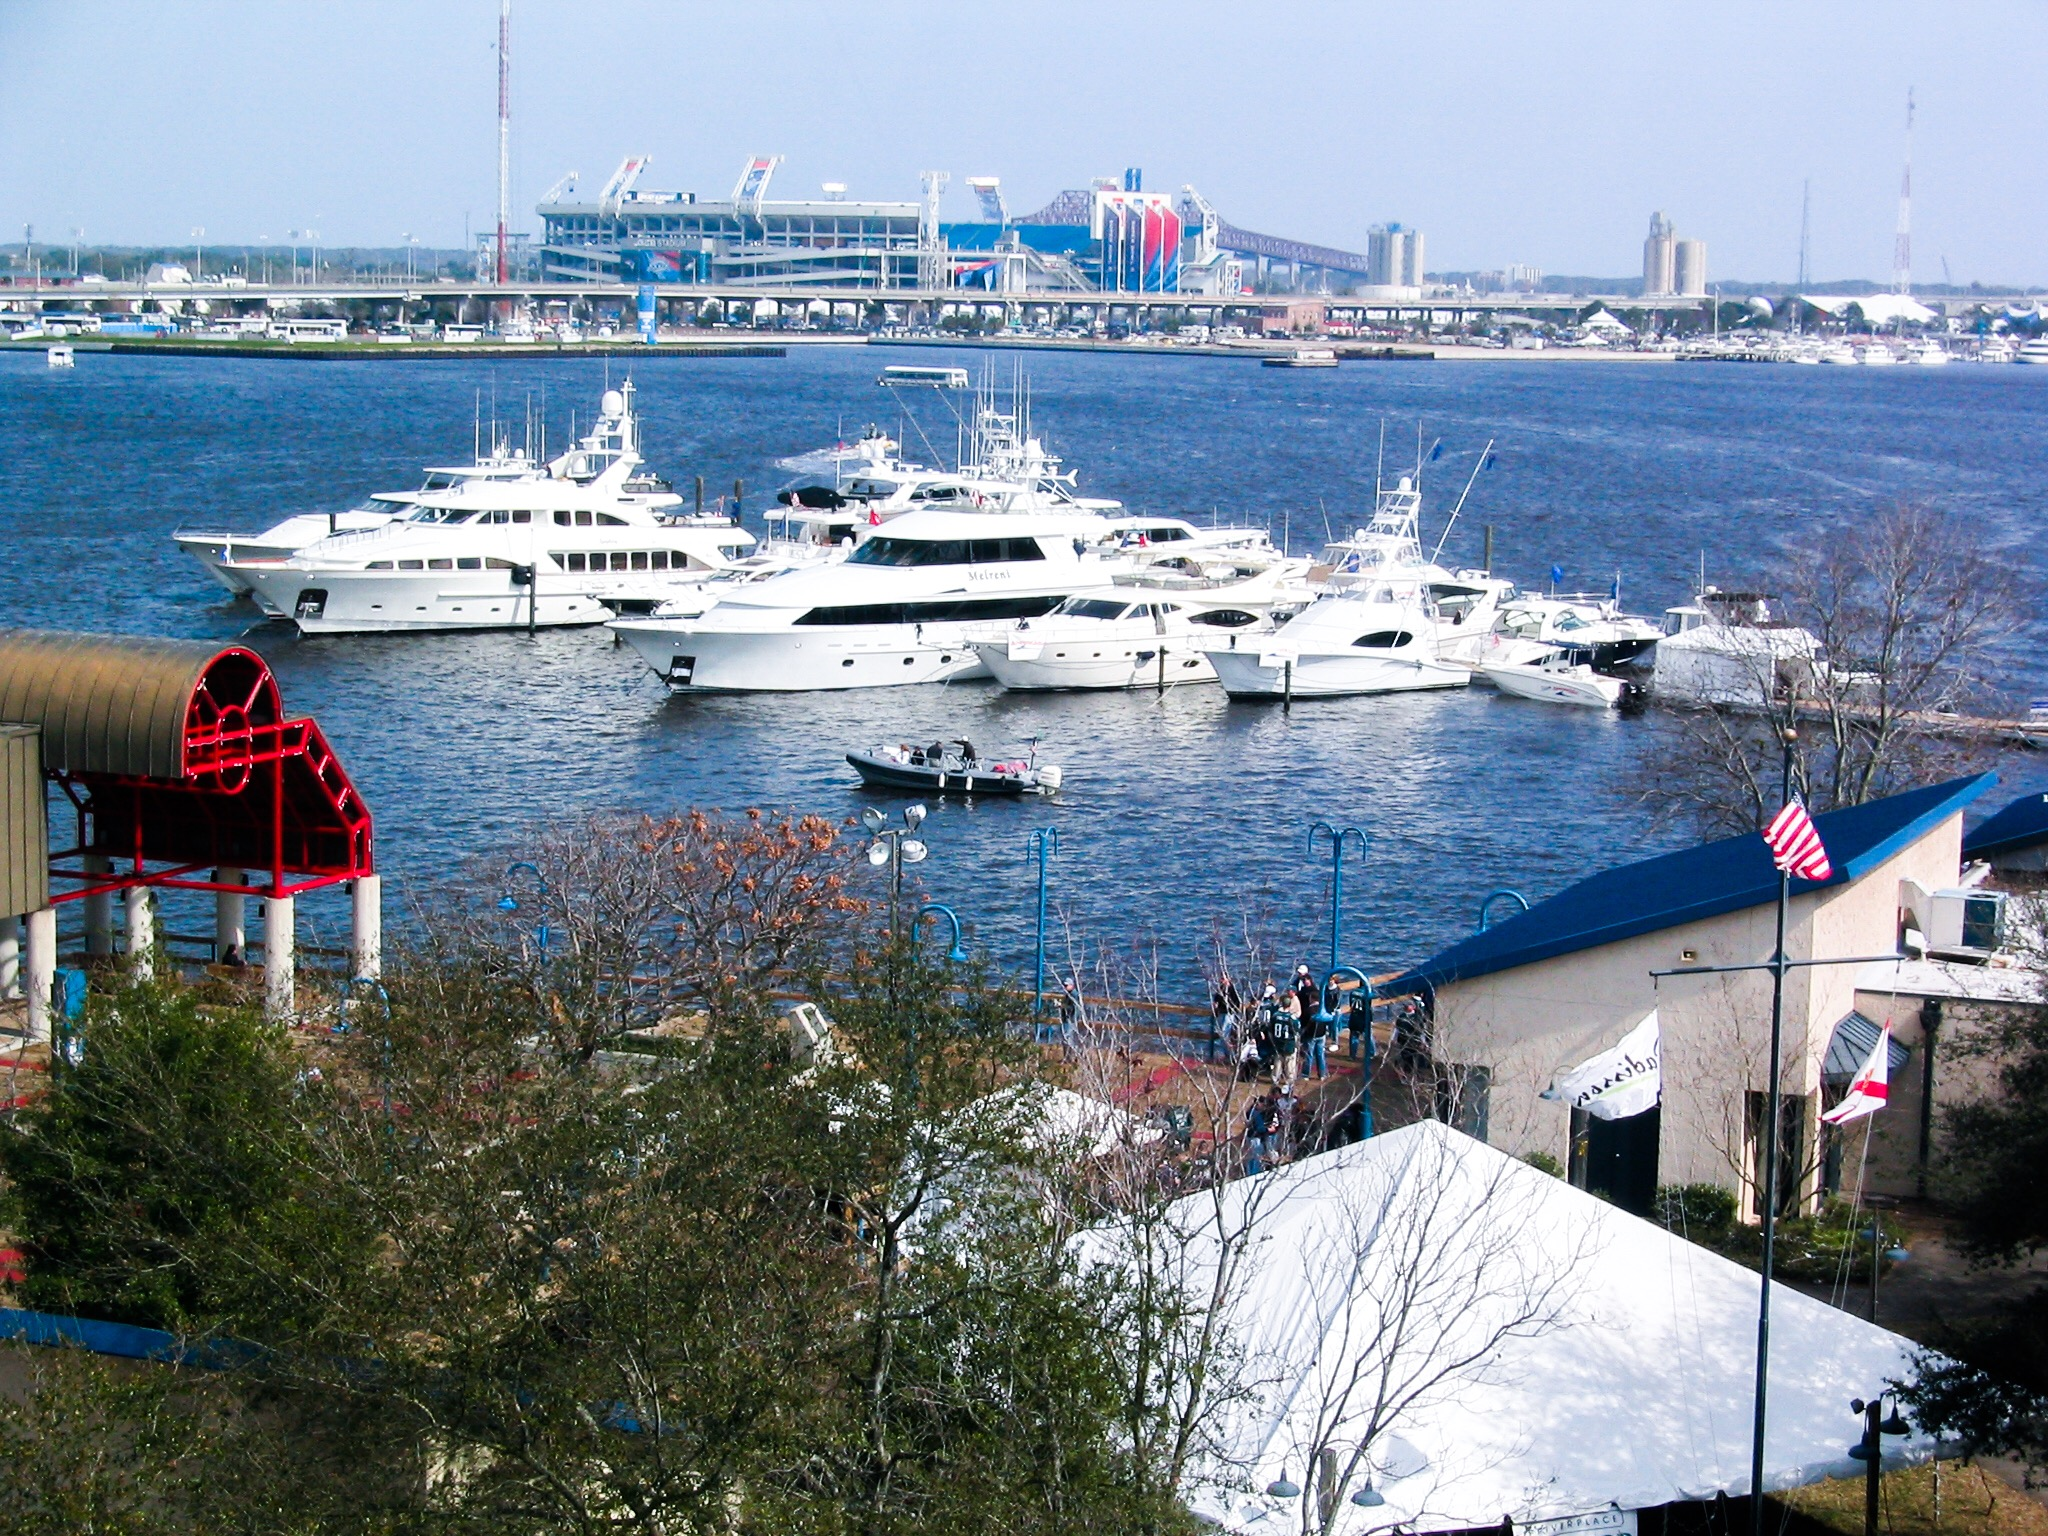 Super Bowl XXXLX - Yachts Docked at Floating Docks - Allsports Productions